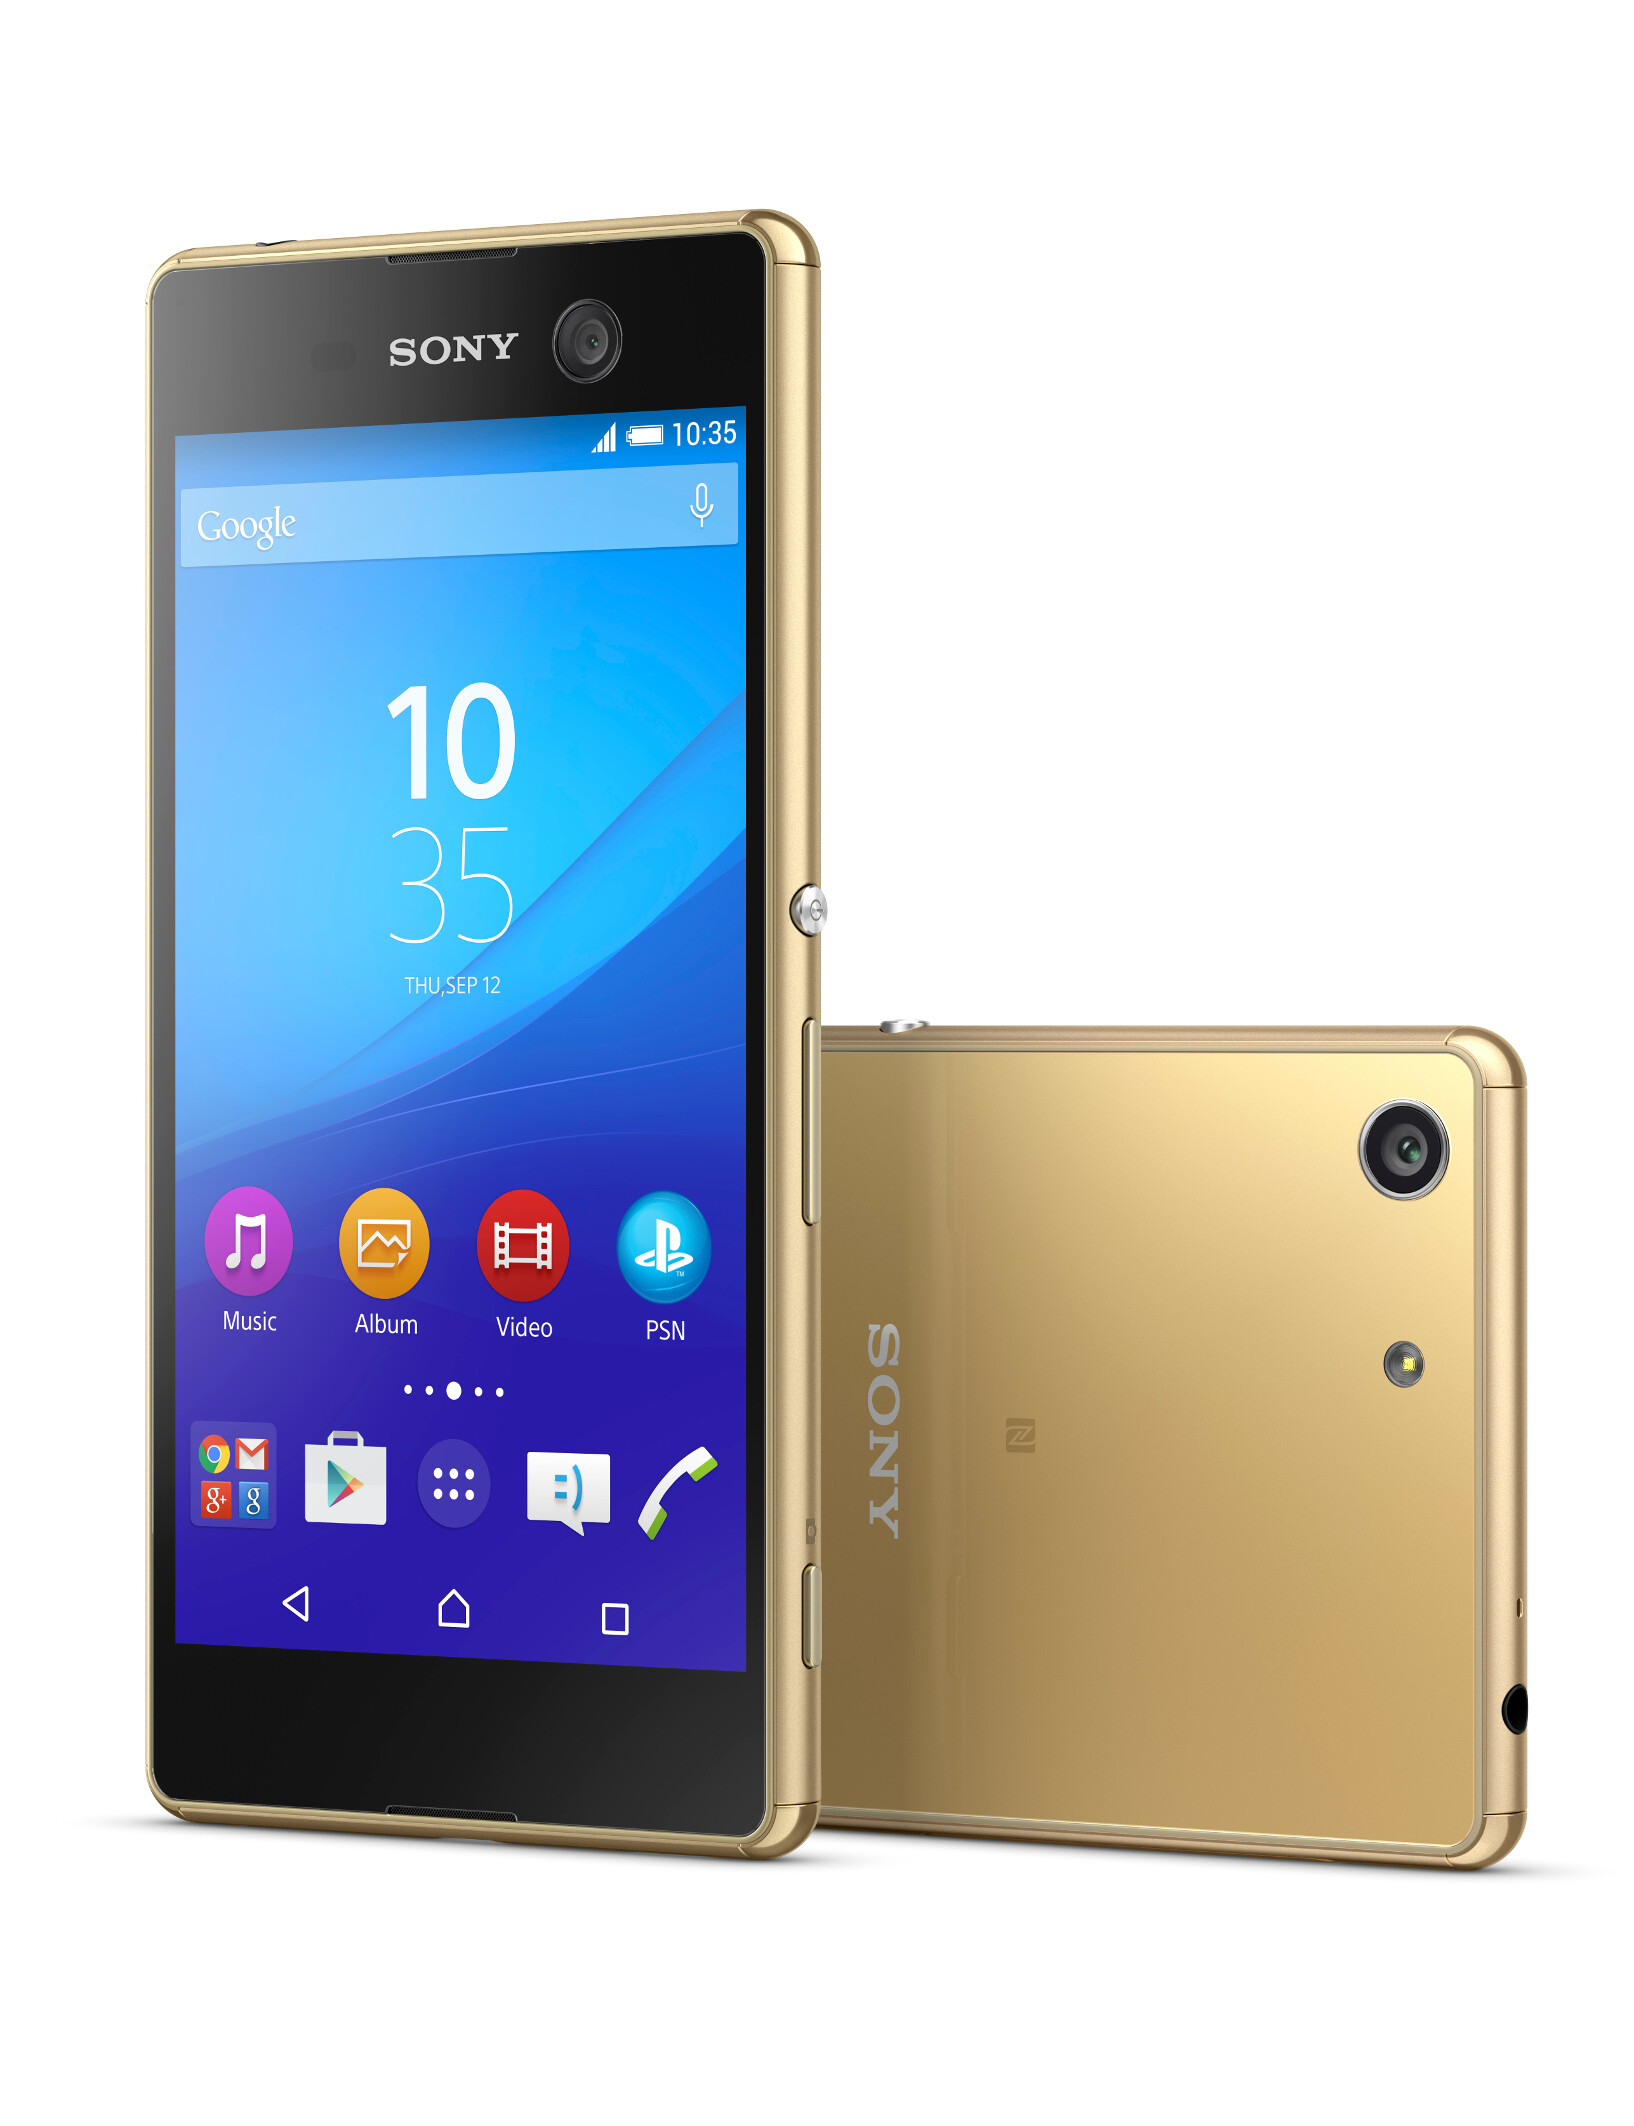 sony xperia m5 release date in india does mean